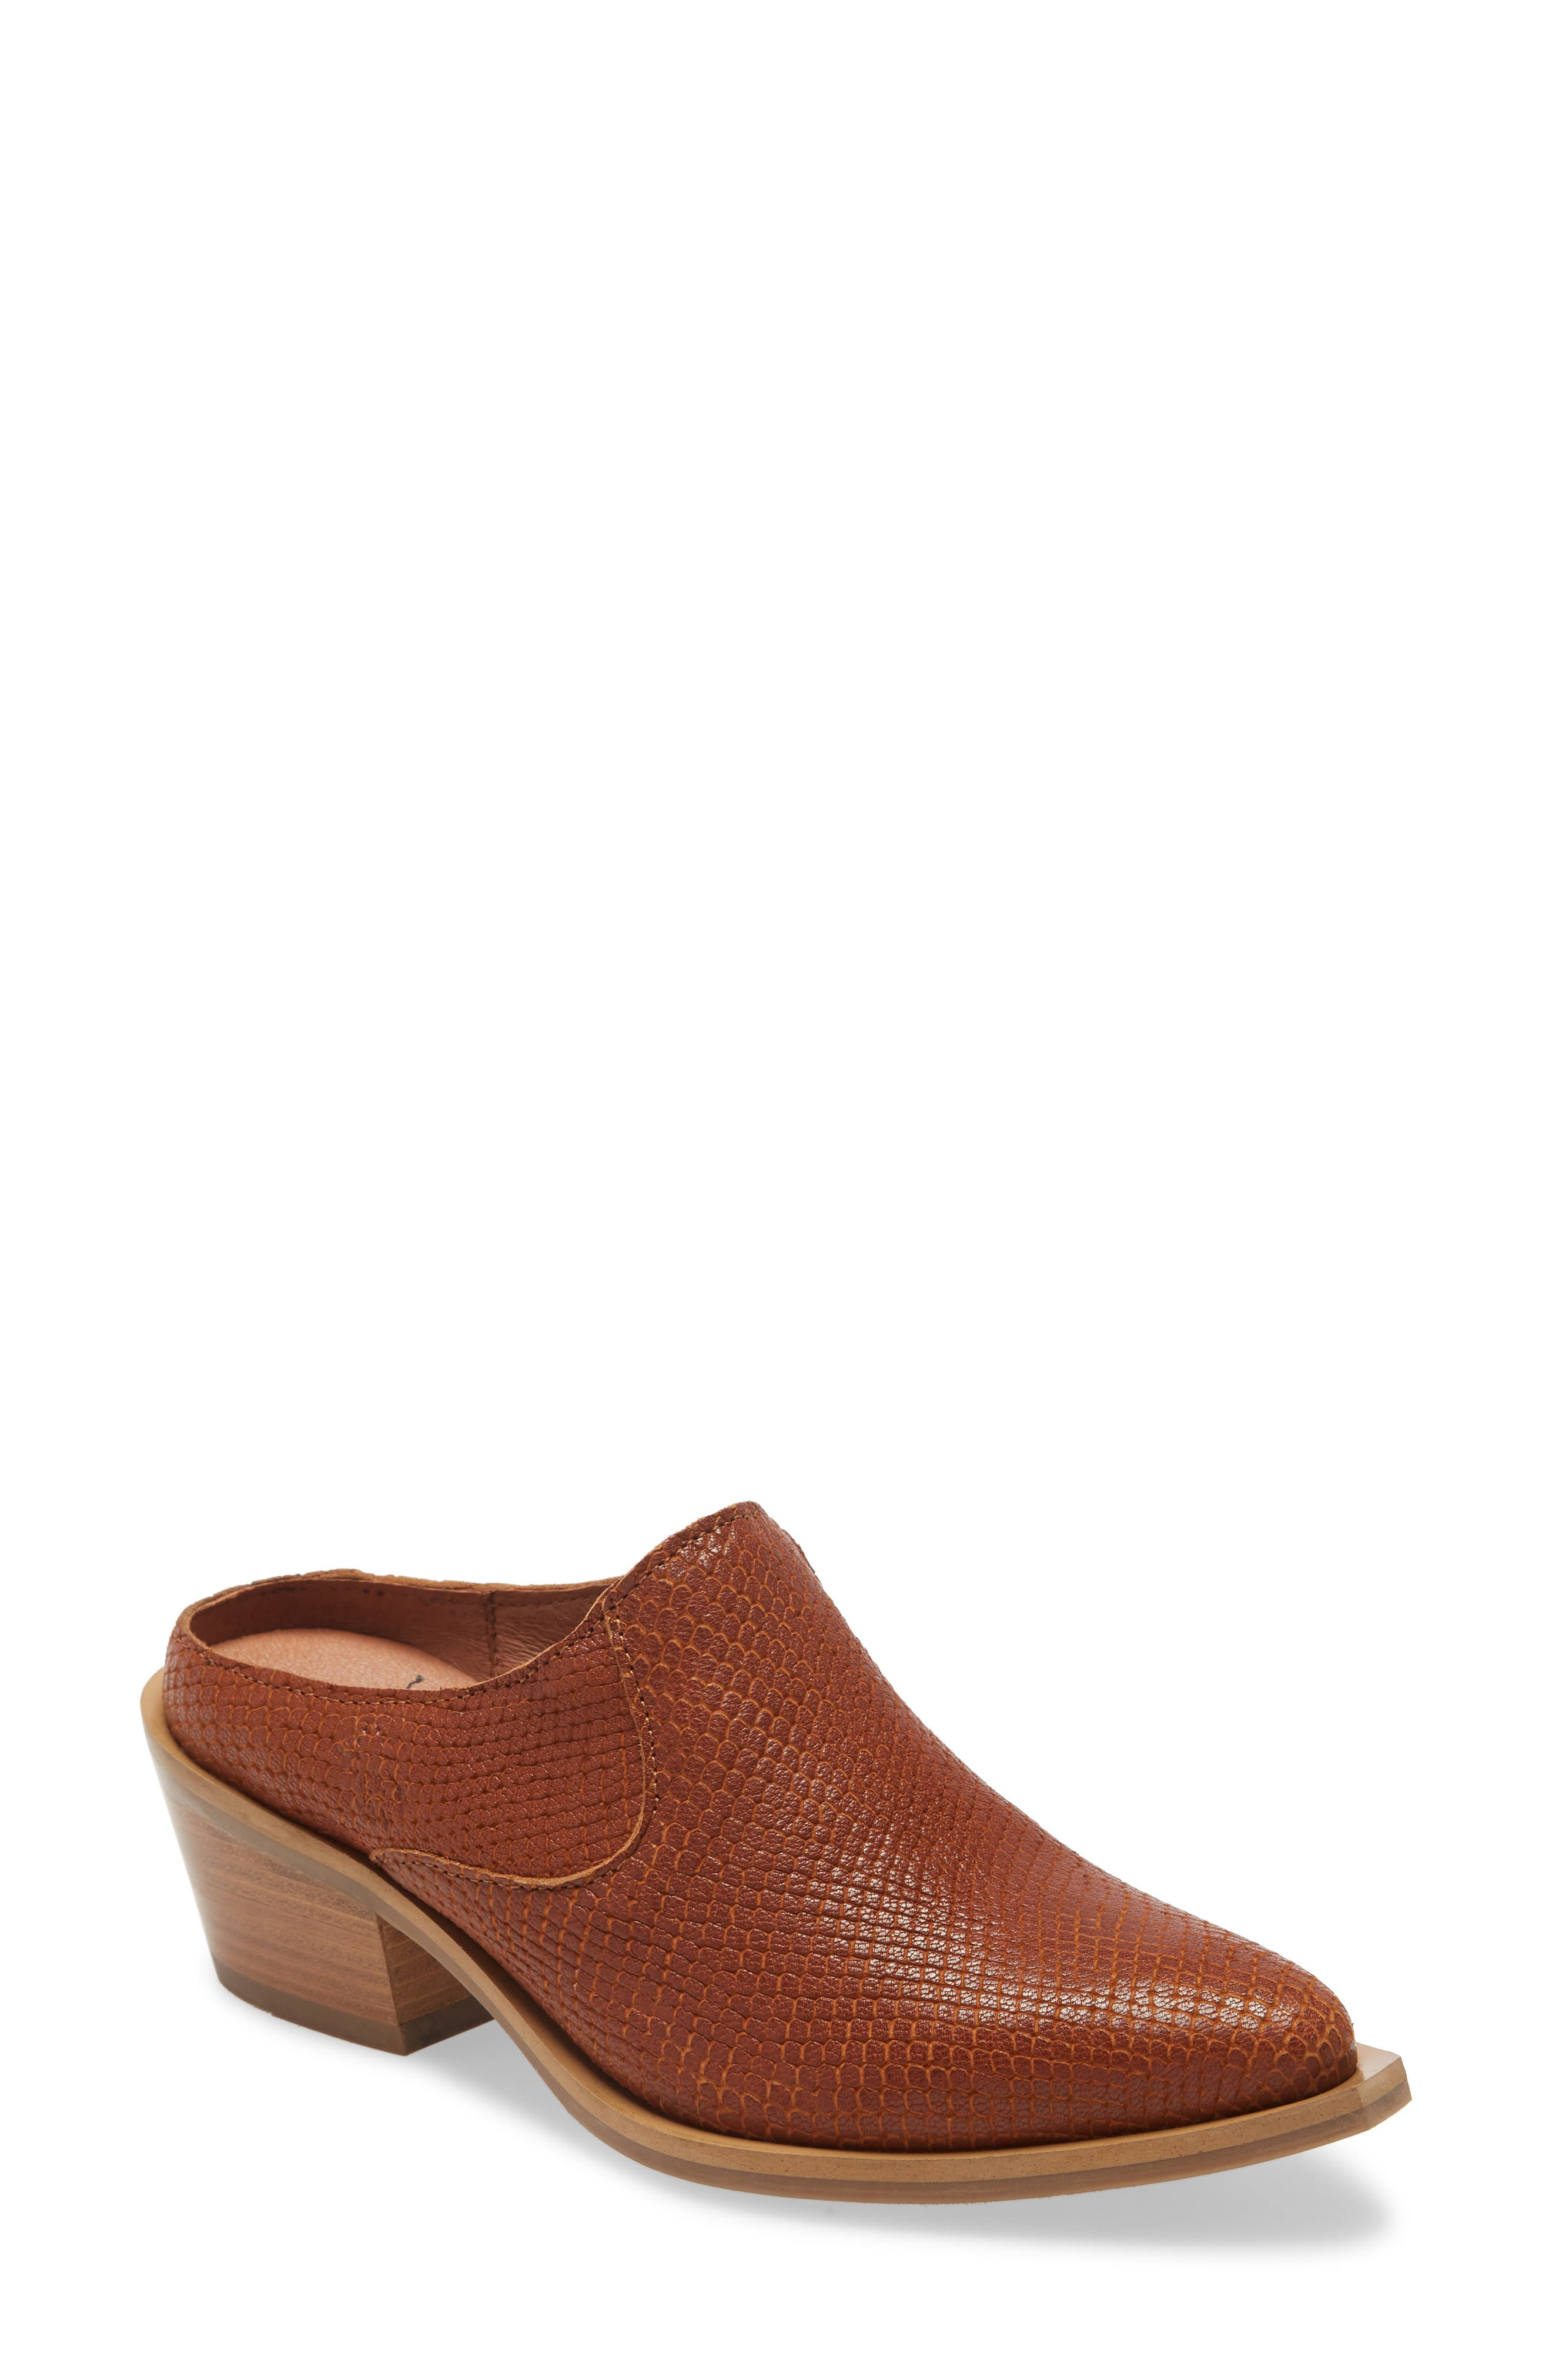 Striking and comfy, a Western-inspired mule is fitted with a cushy footbed and just-right heel, so you can walk all day before striding off into the sunset. Style Name: Fly London Ivot Mule (Women). Style Number: 6002339. Available in stores.